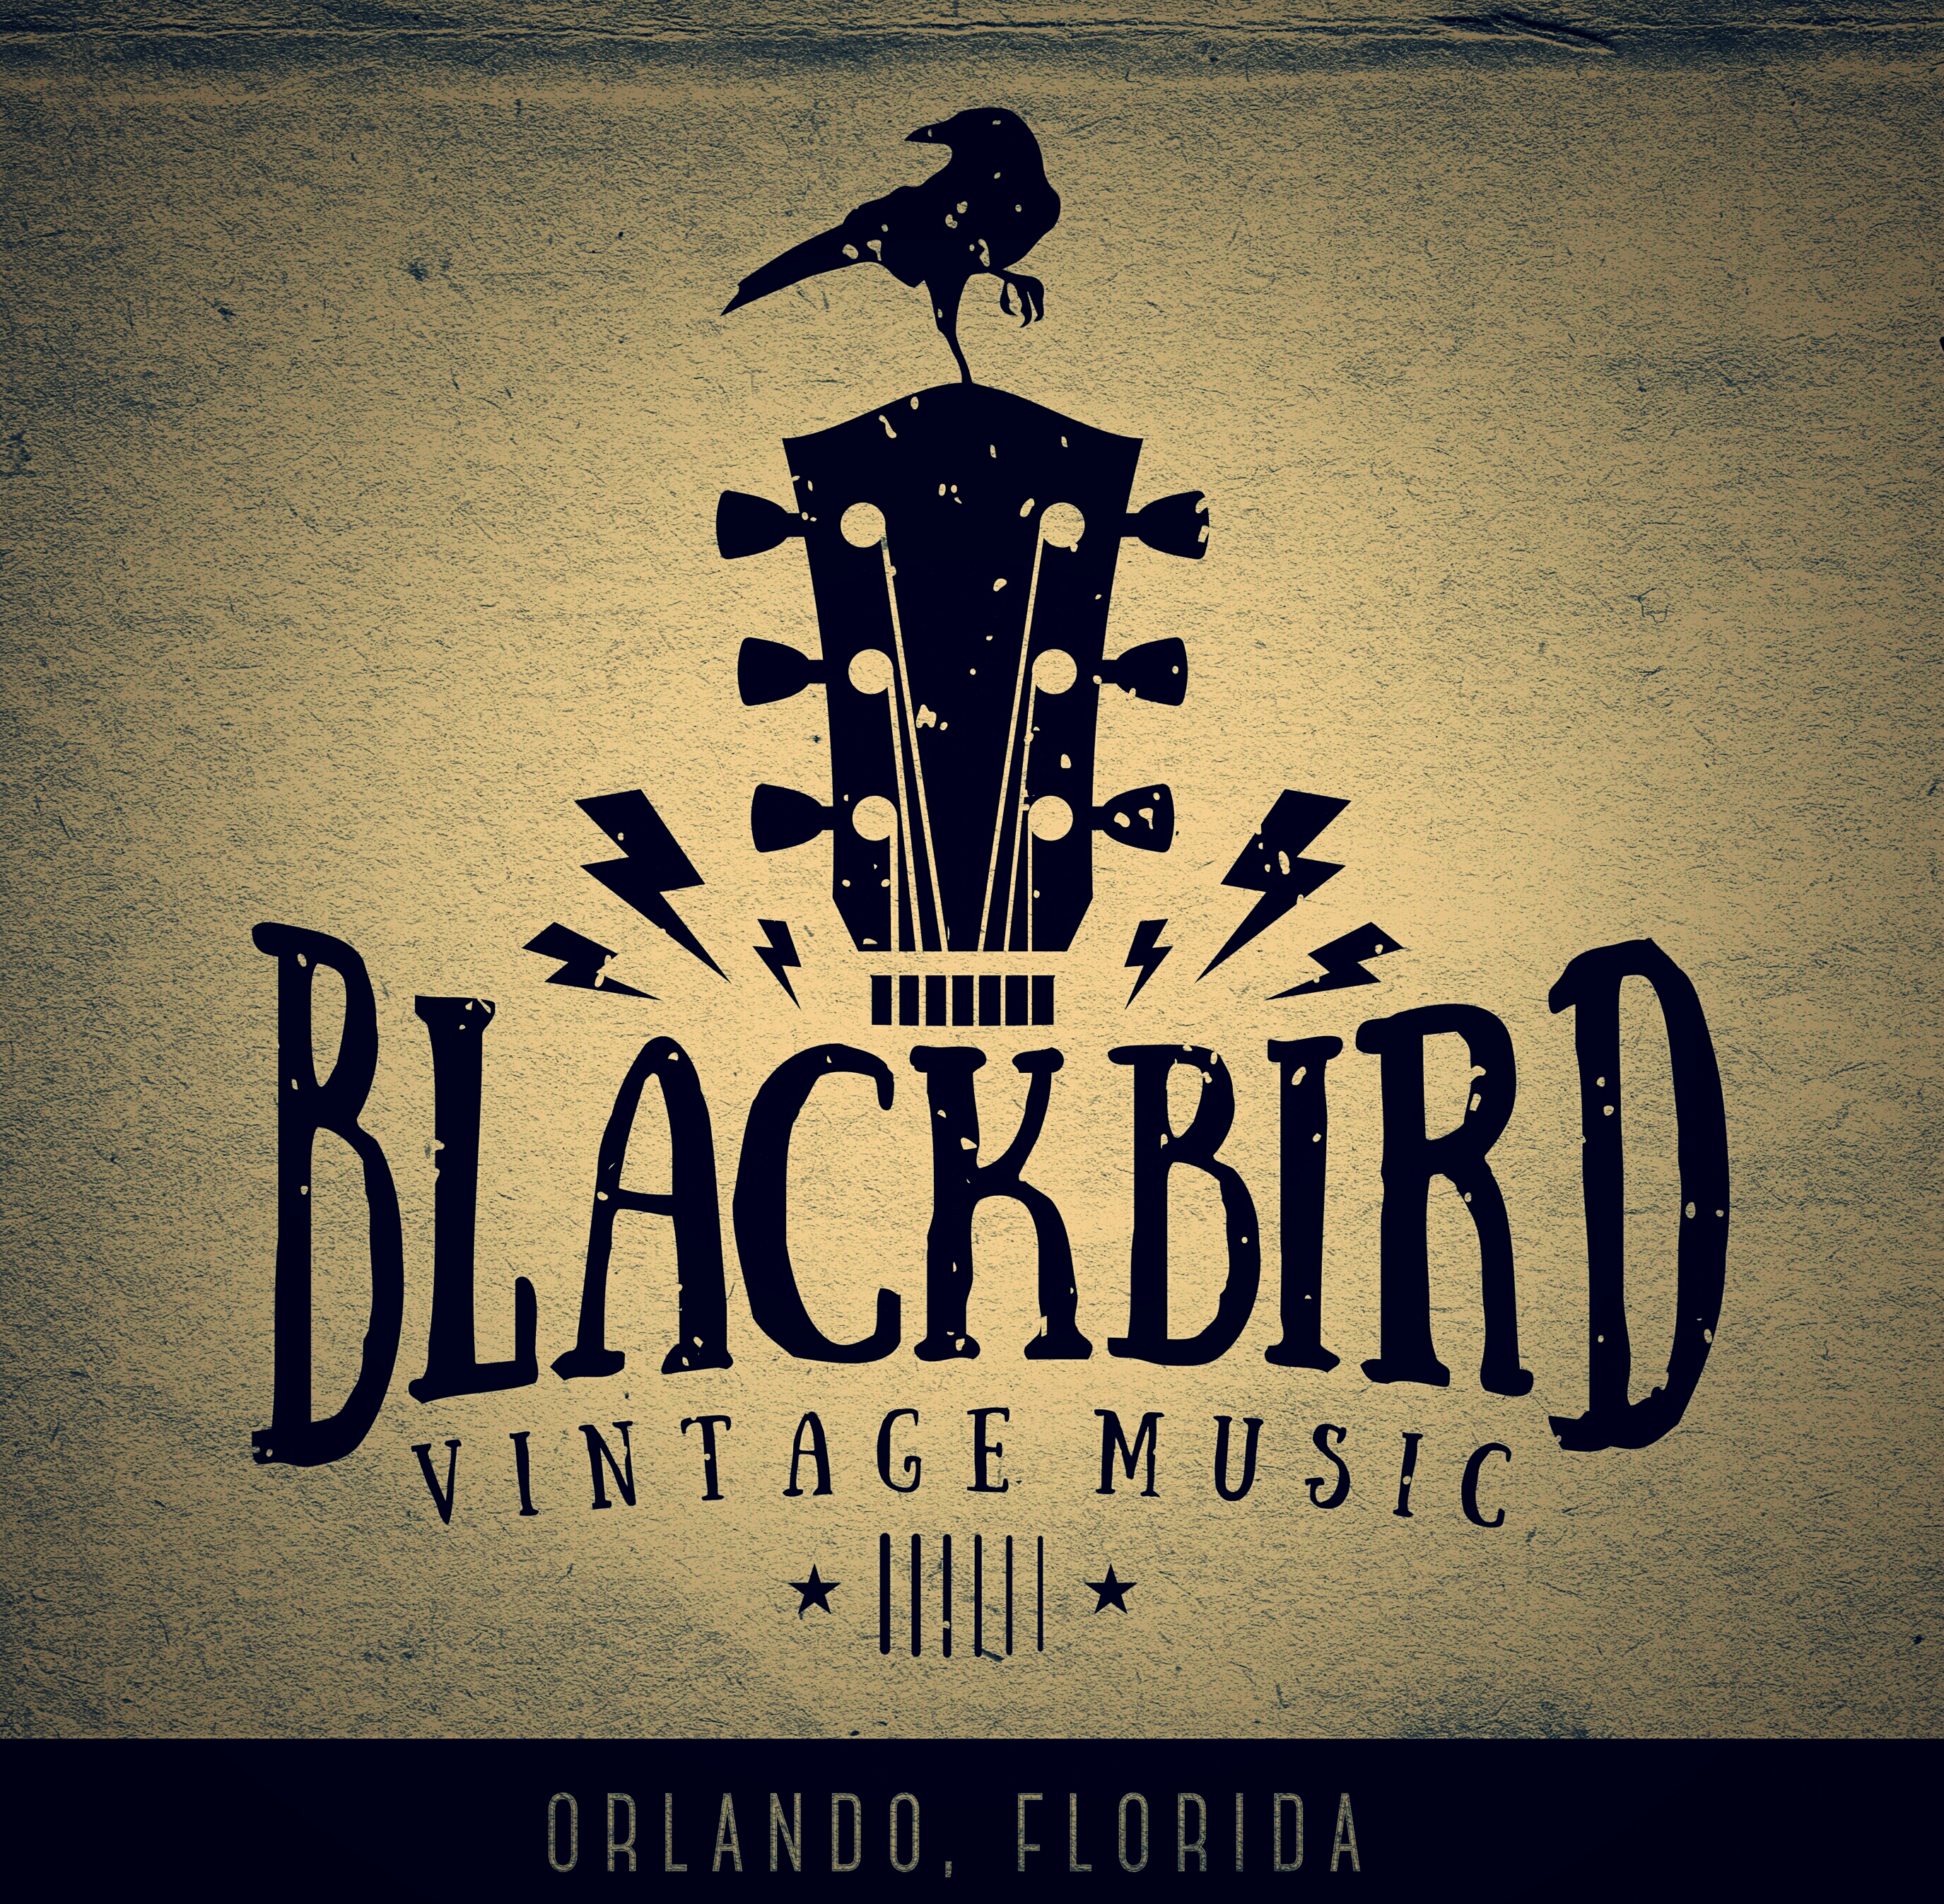 Blackbird Vintage Music